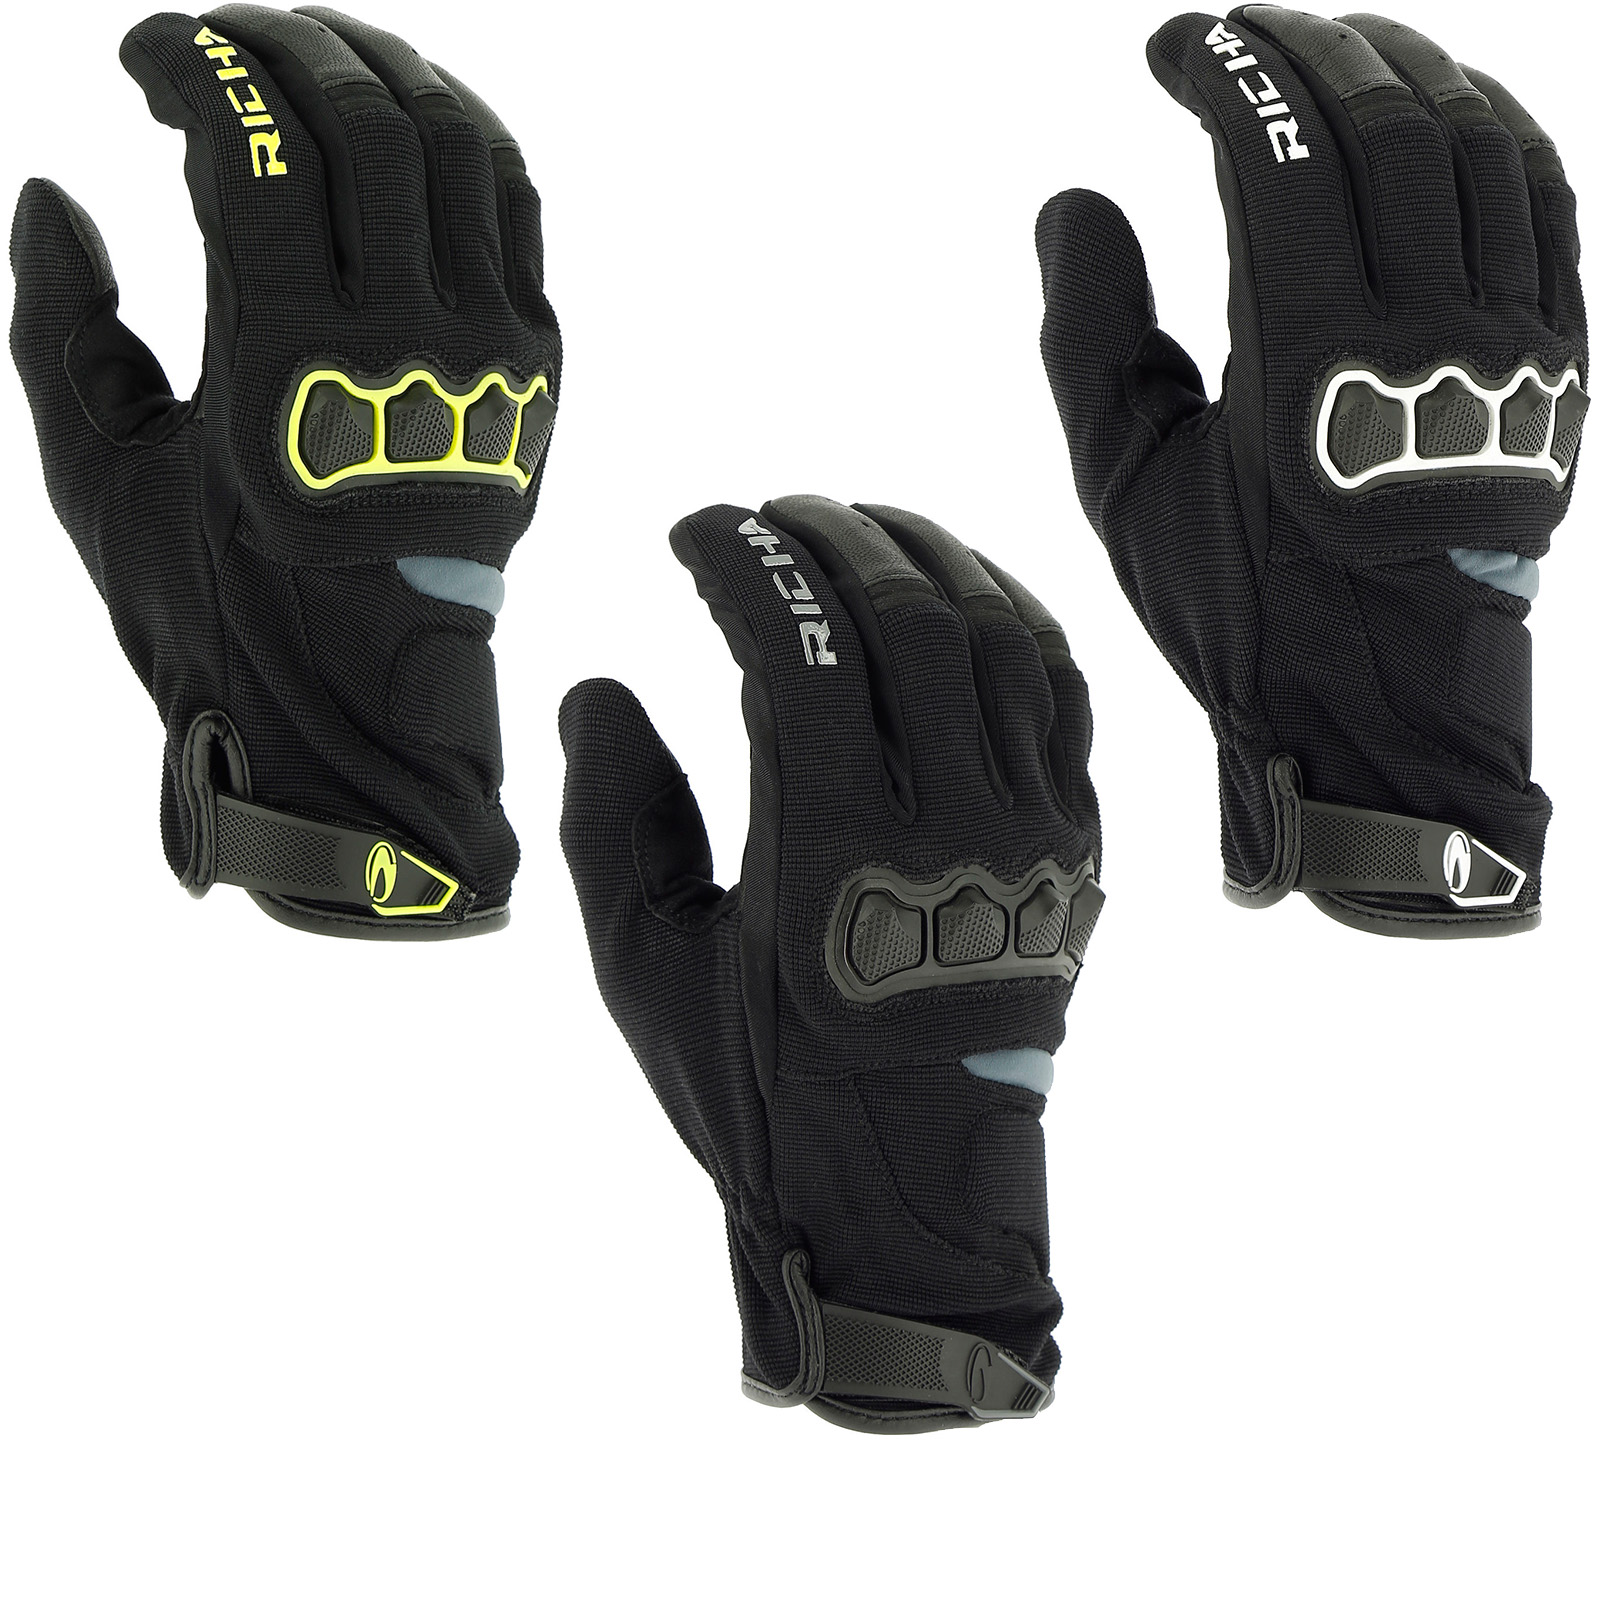 Motorcycle gloves richa - Richa Spyder Motorcycle Gloves